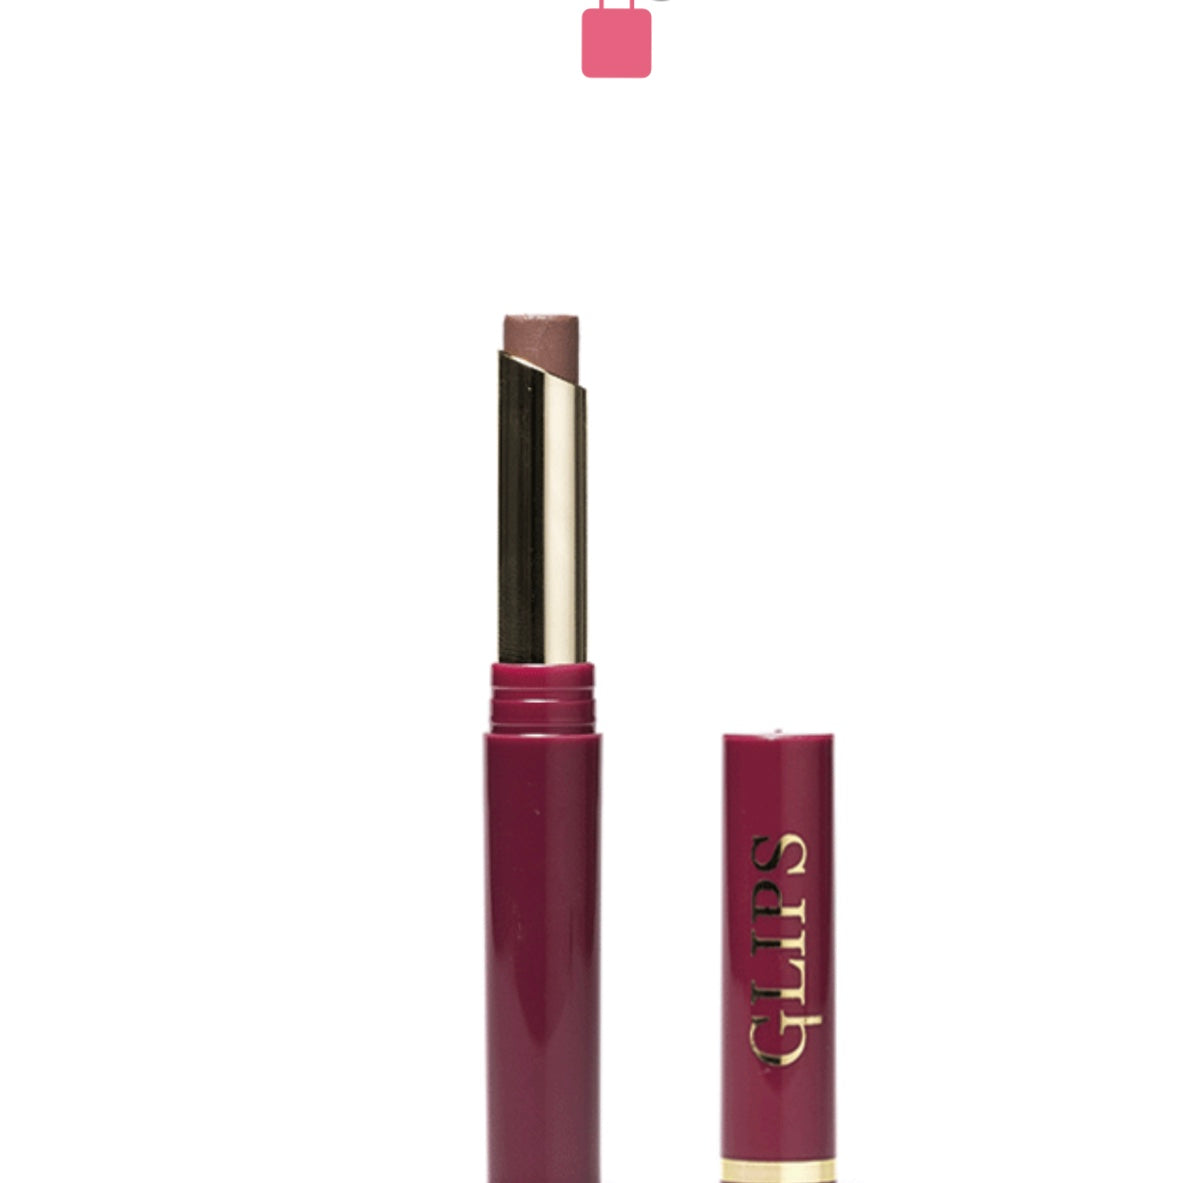 Labial Matte Unconditional